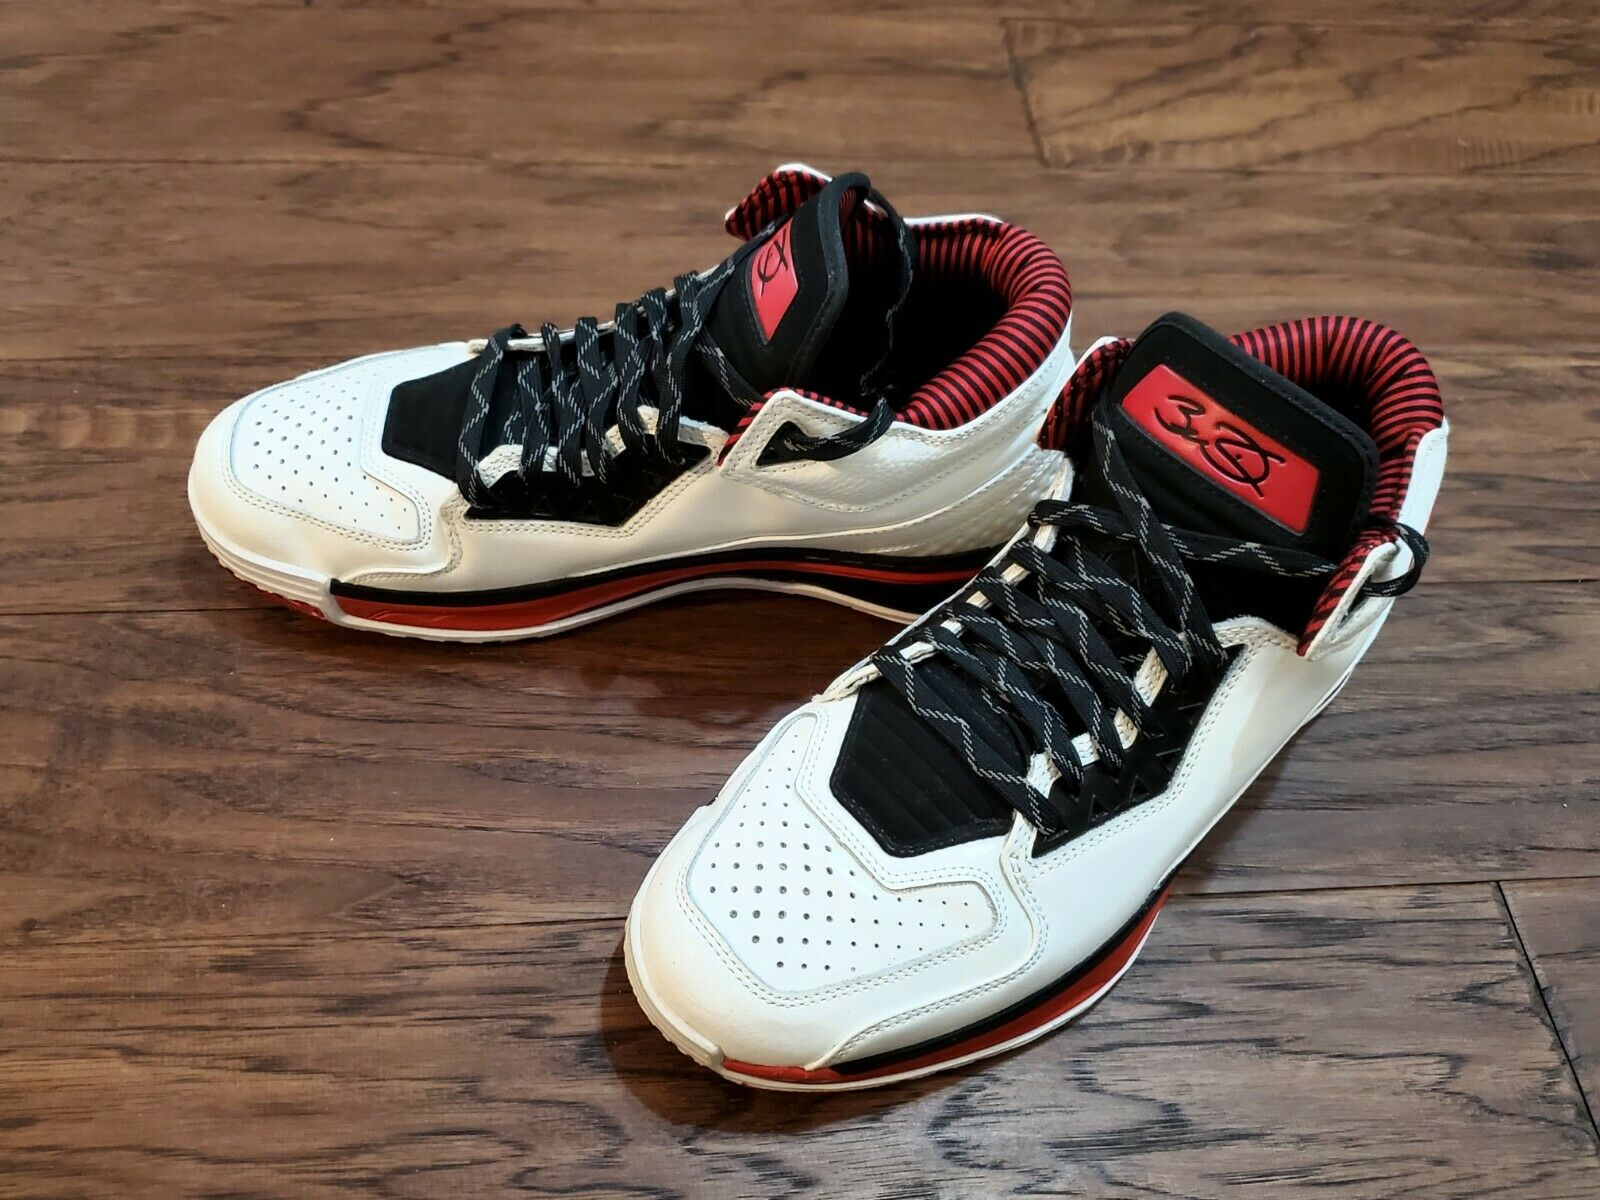 Lining WOW Way of Wade Men Basketball Shoes Rare Limited FREE Shipping